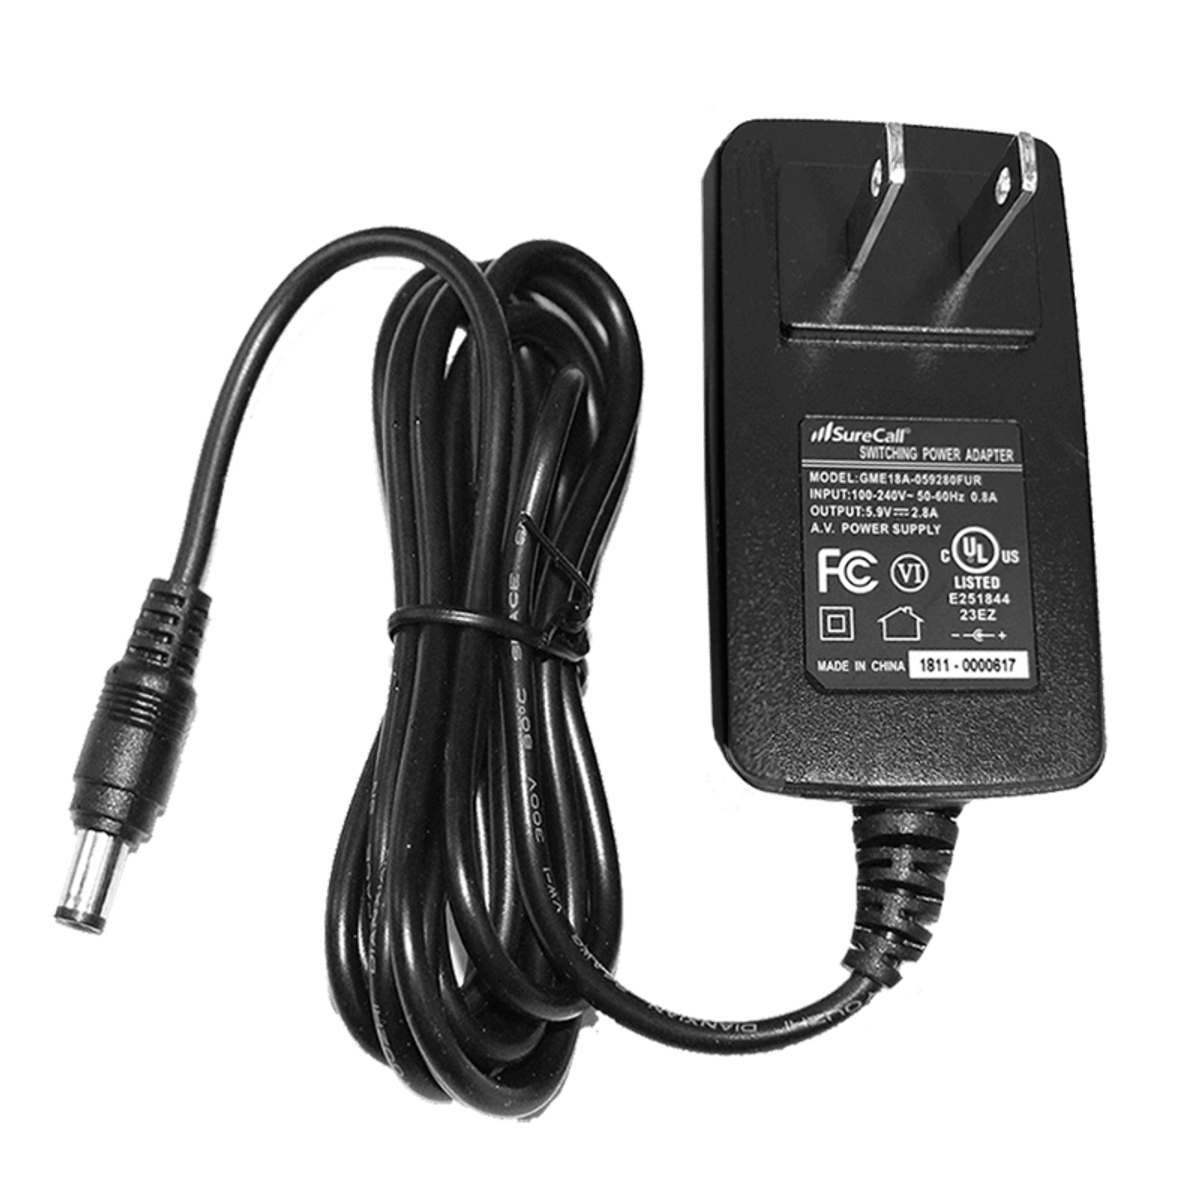 SureCall Fusion4Home Cell Phone Signal Booster AC Adapter Plug